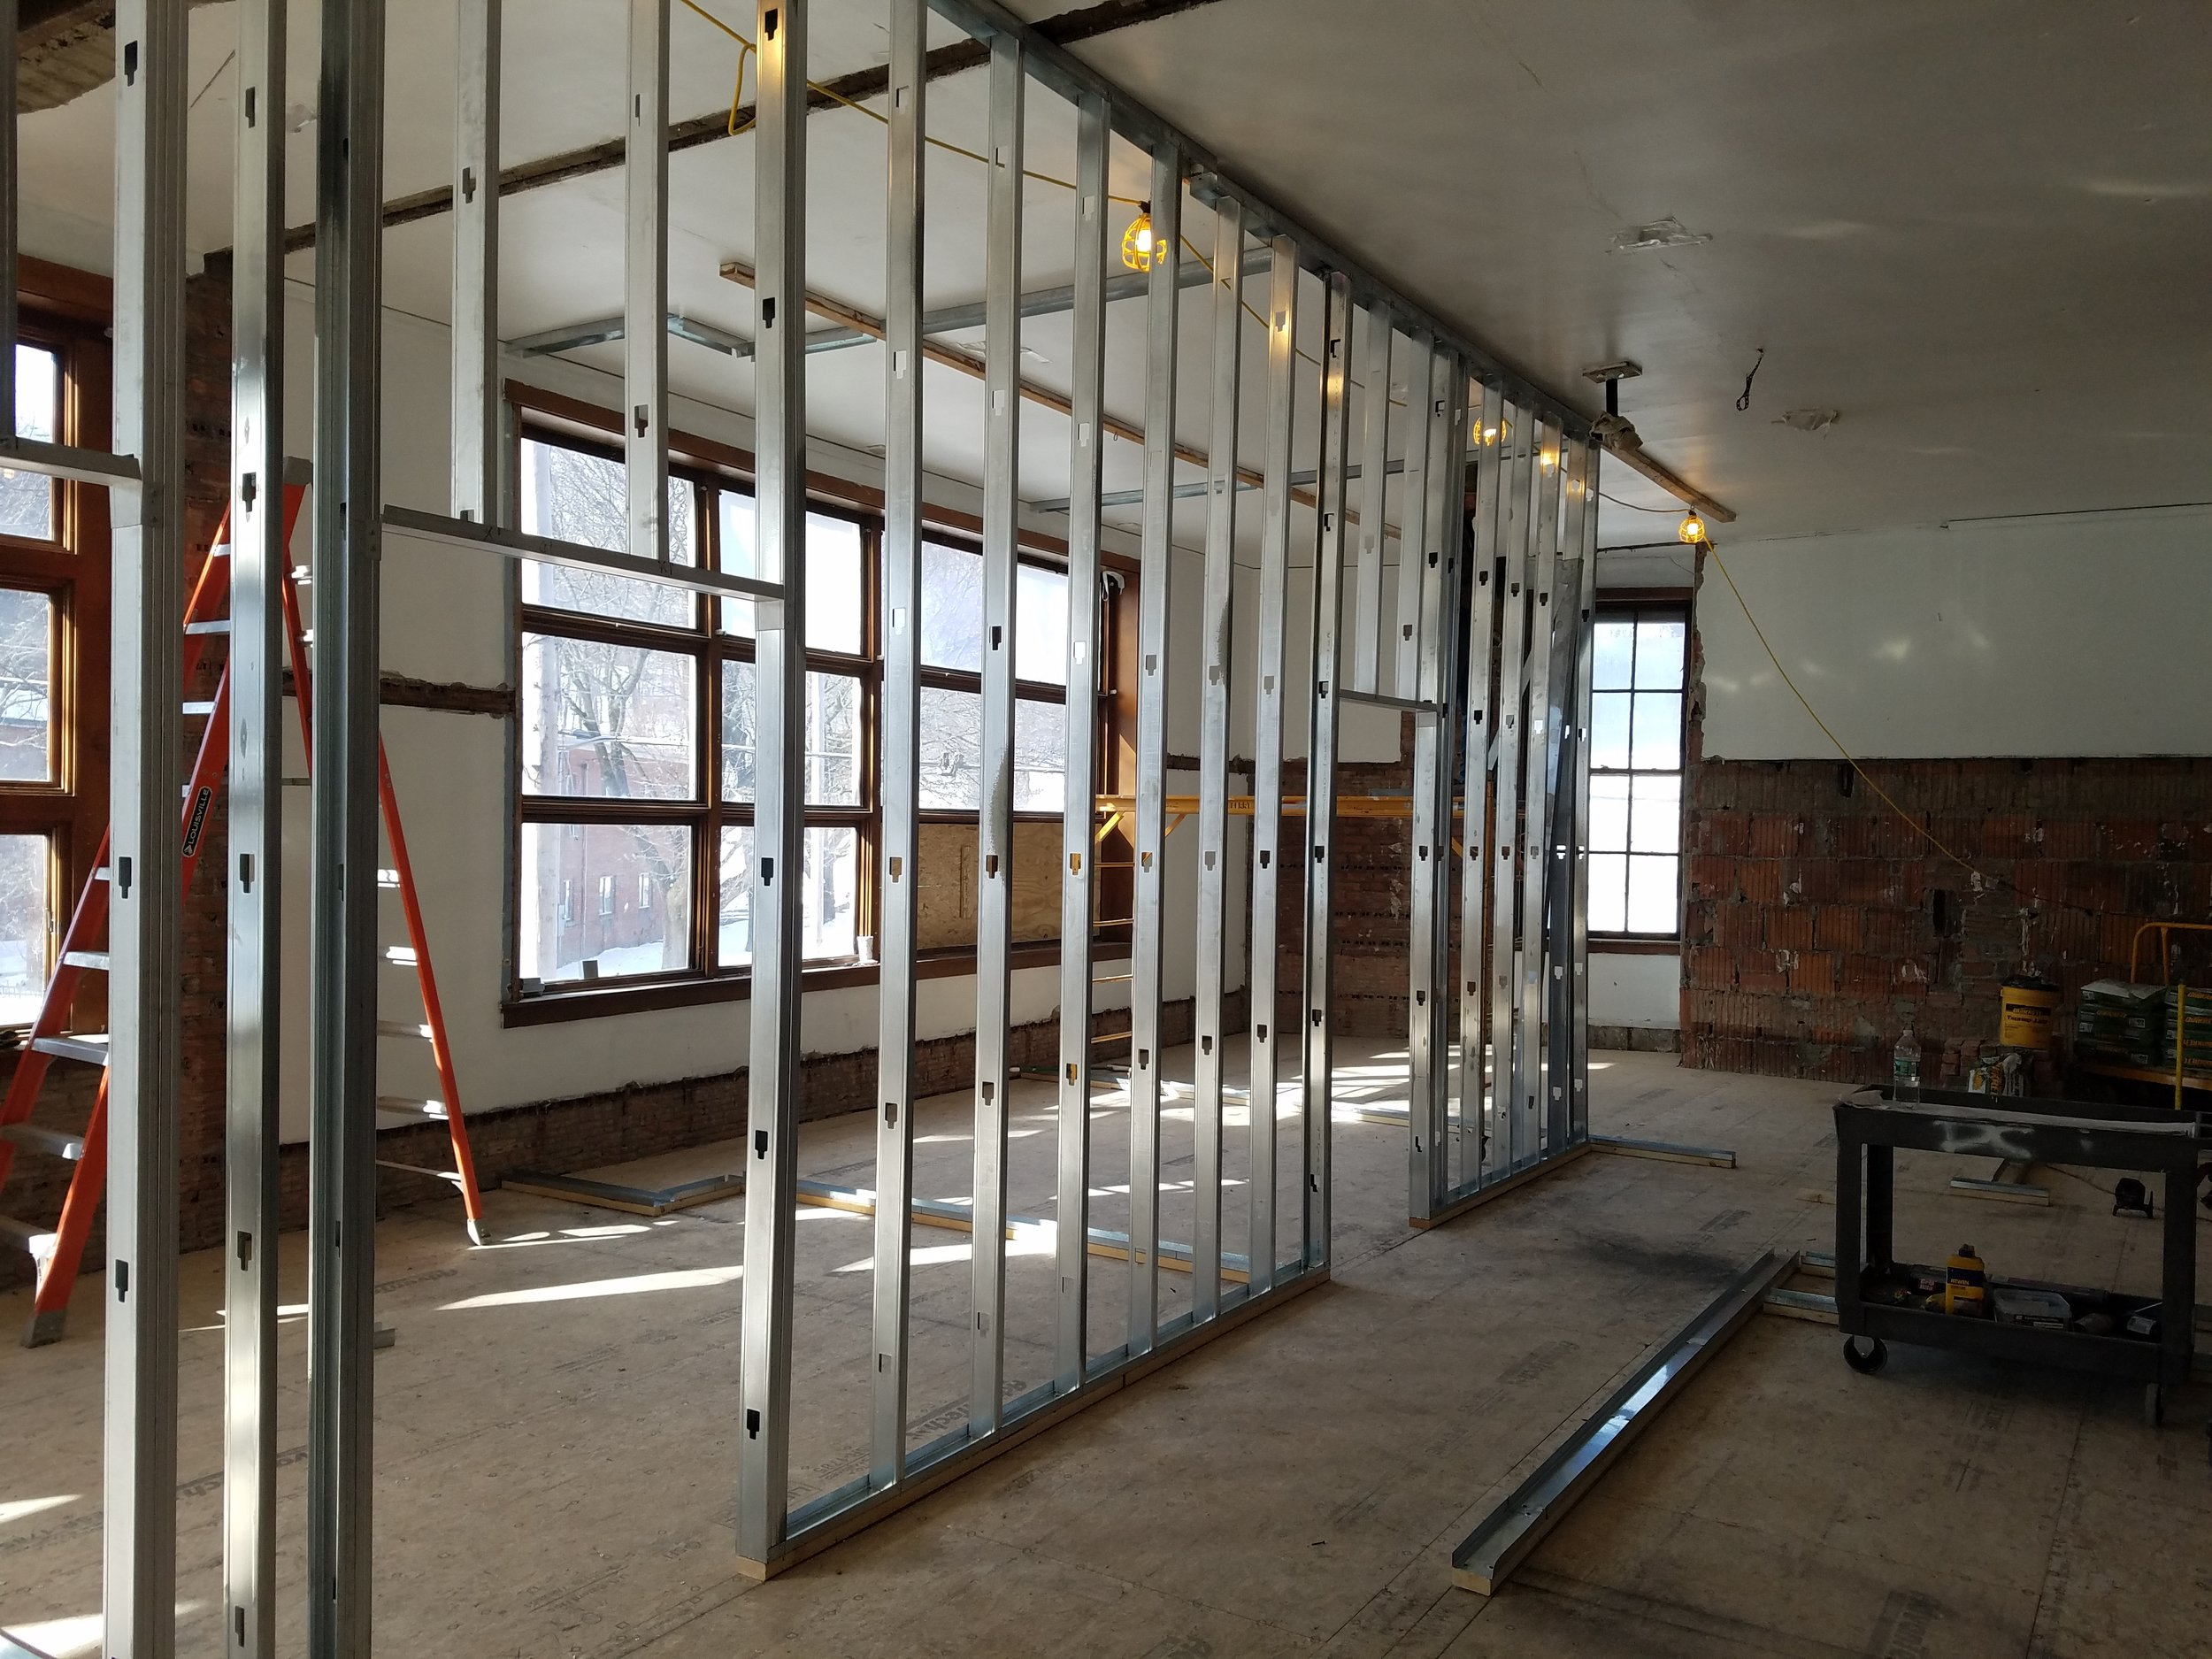 Framing for walls on first floor in progress.